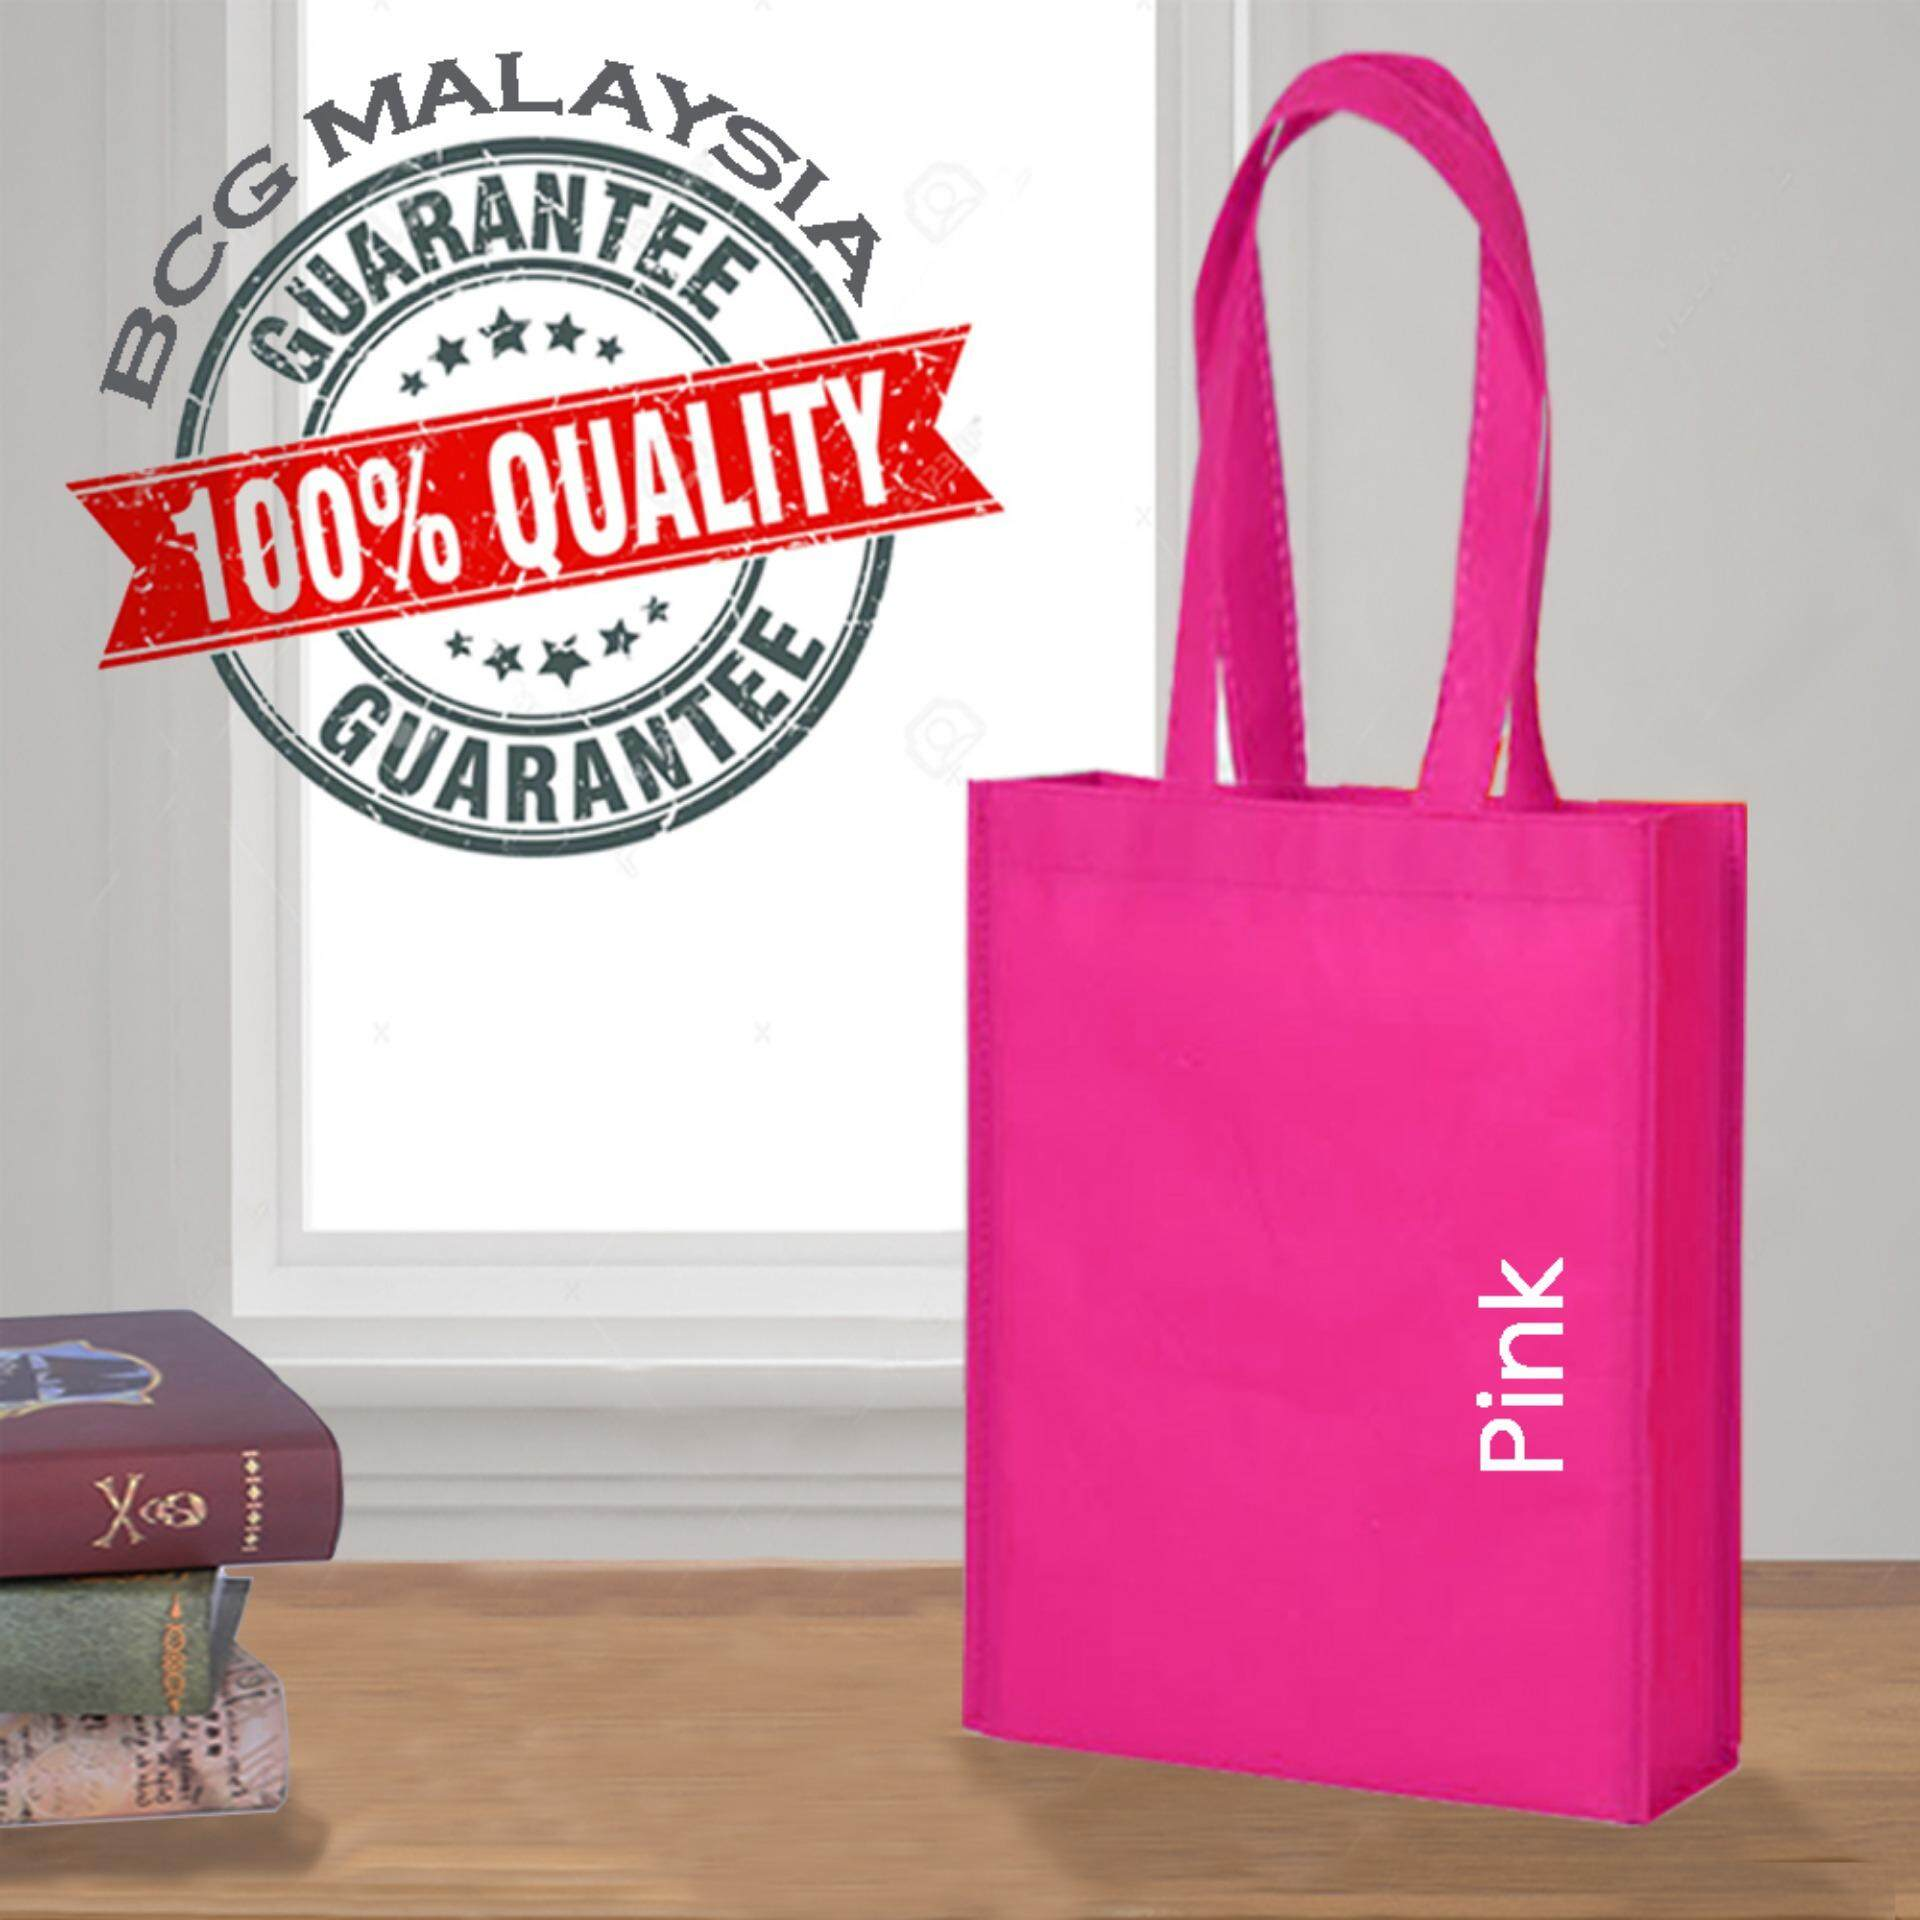 [Ready Stock] BCG Malaysia A4 Non Woven Bag Recycle Bag 100% Quality Assured